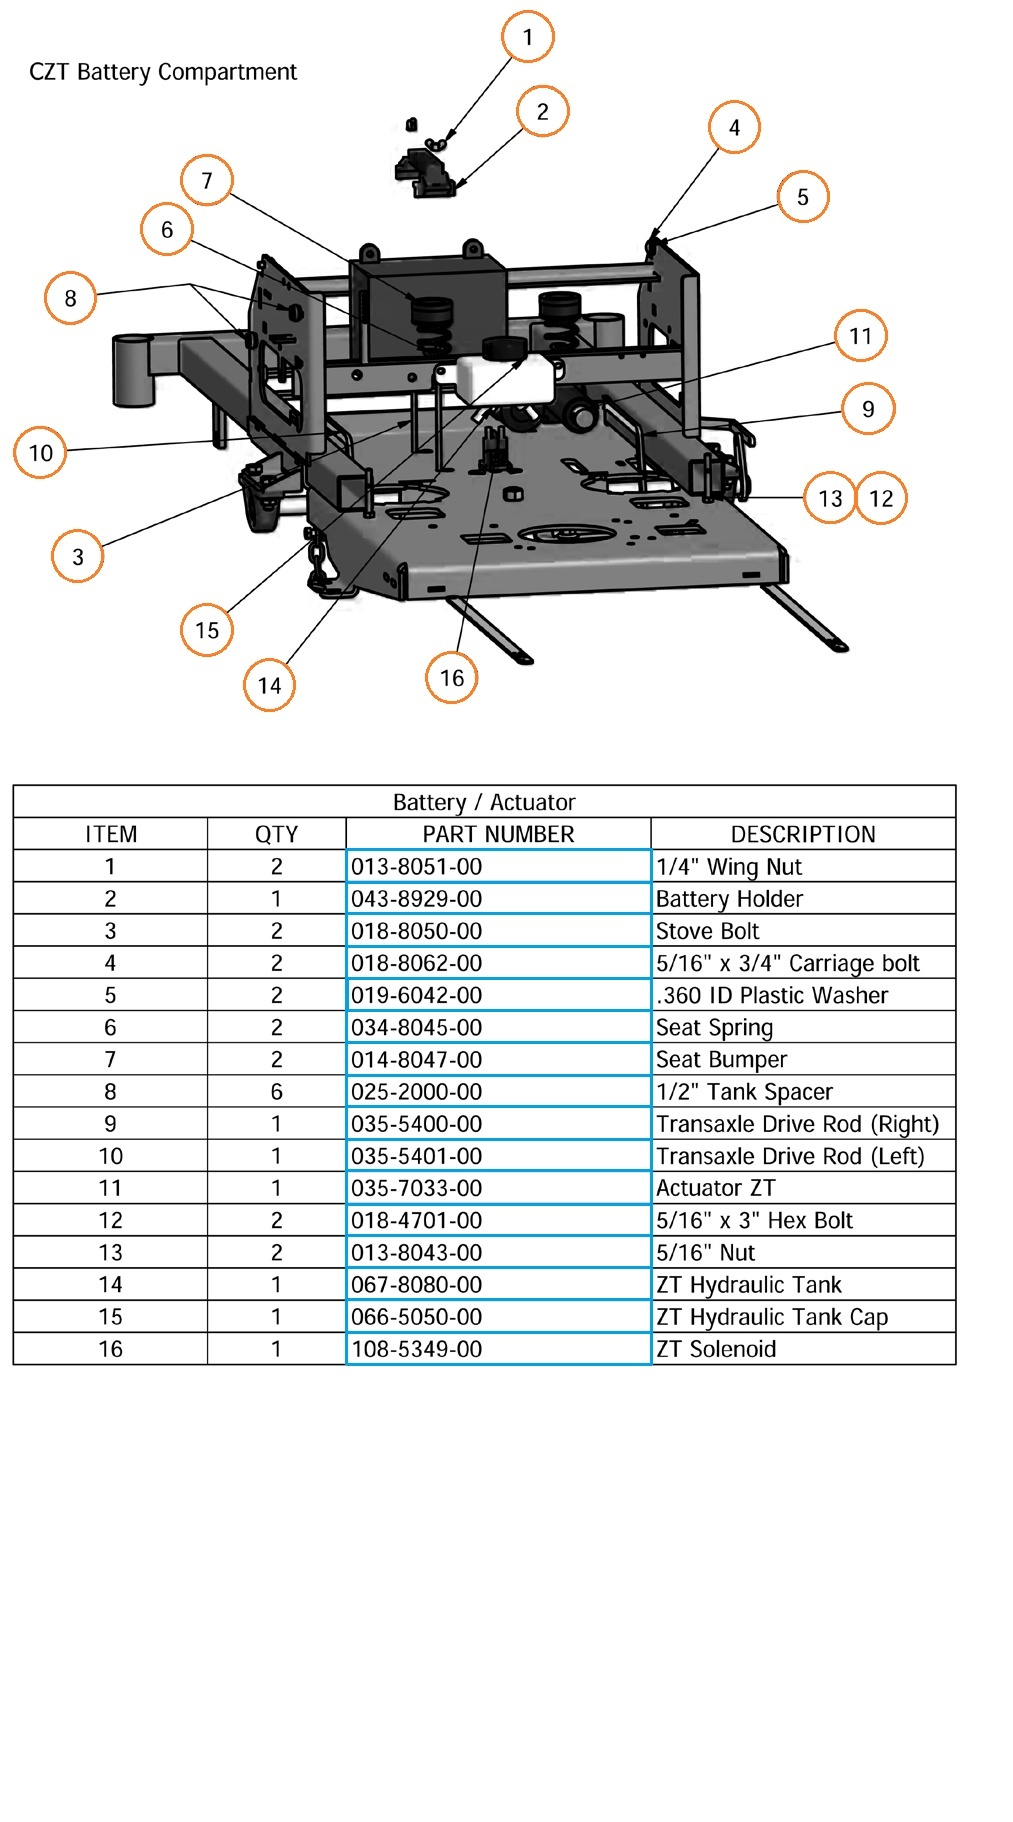 Battery Compartment Assembly Czt Bad Boy Mowers Wiring Diagram